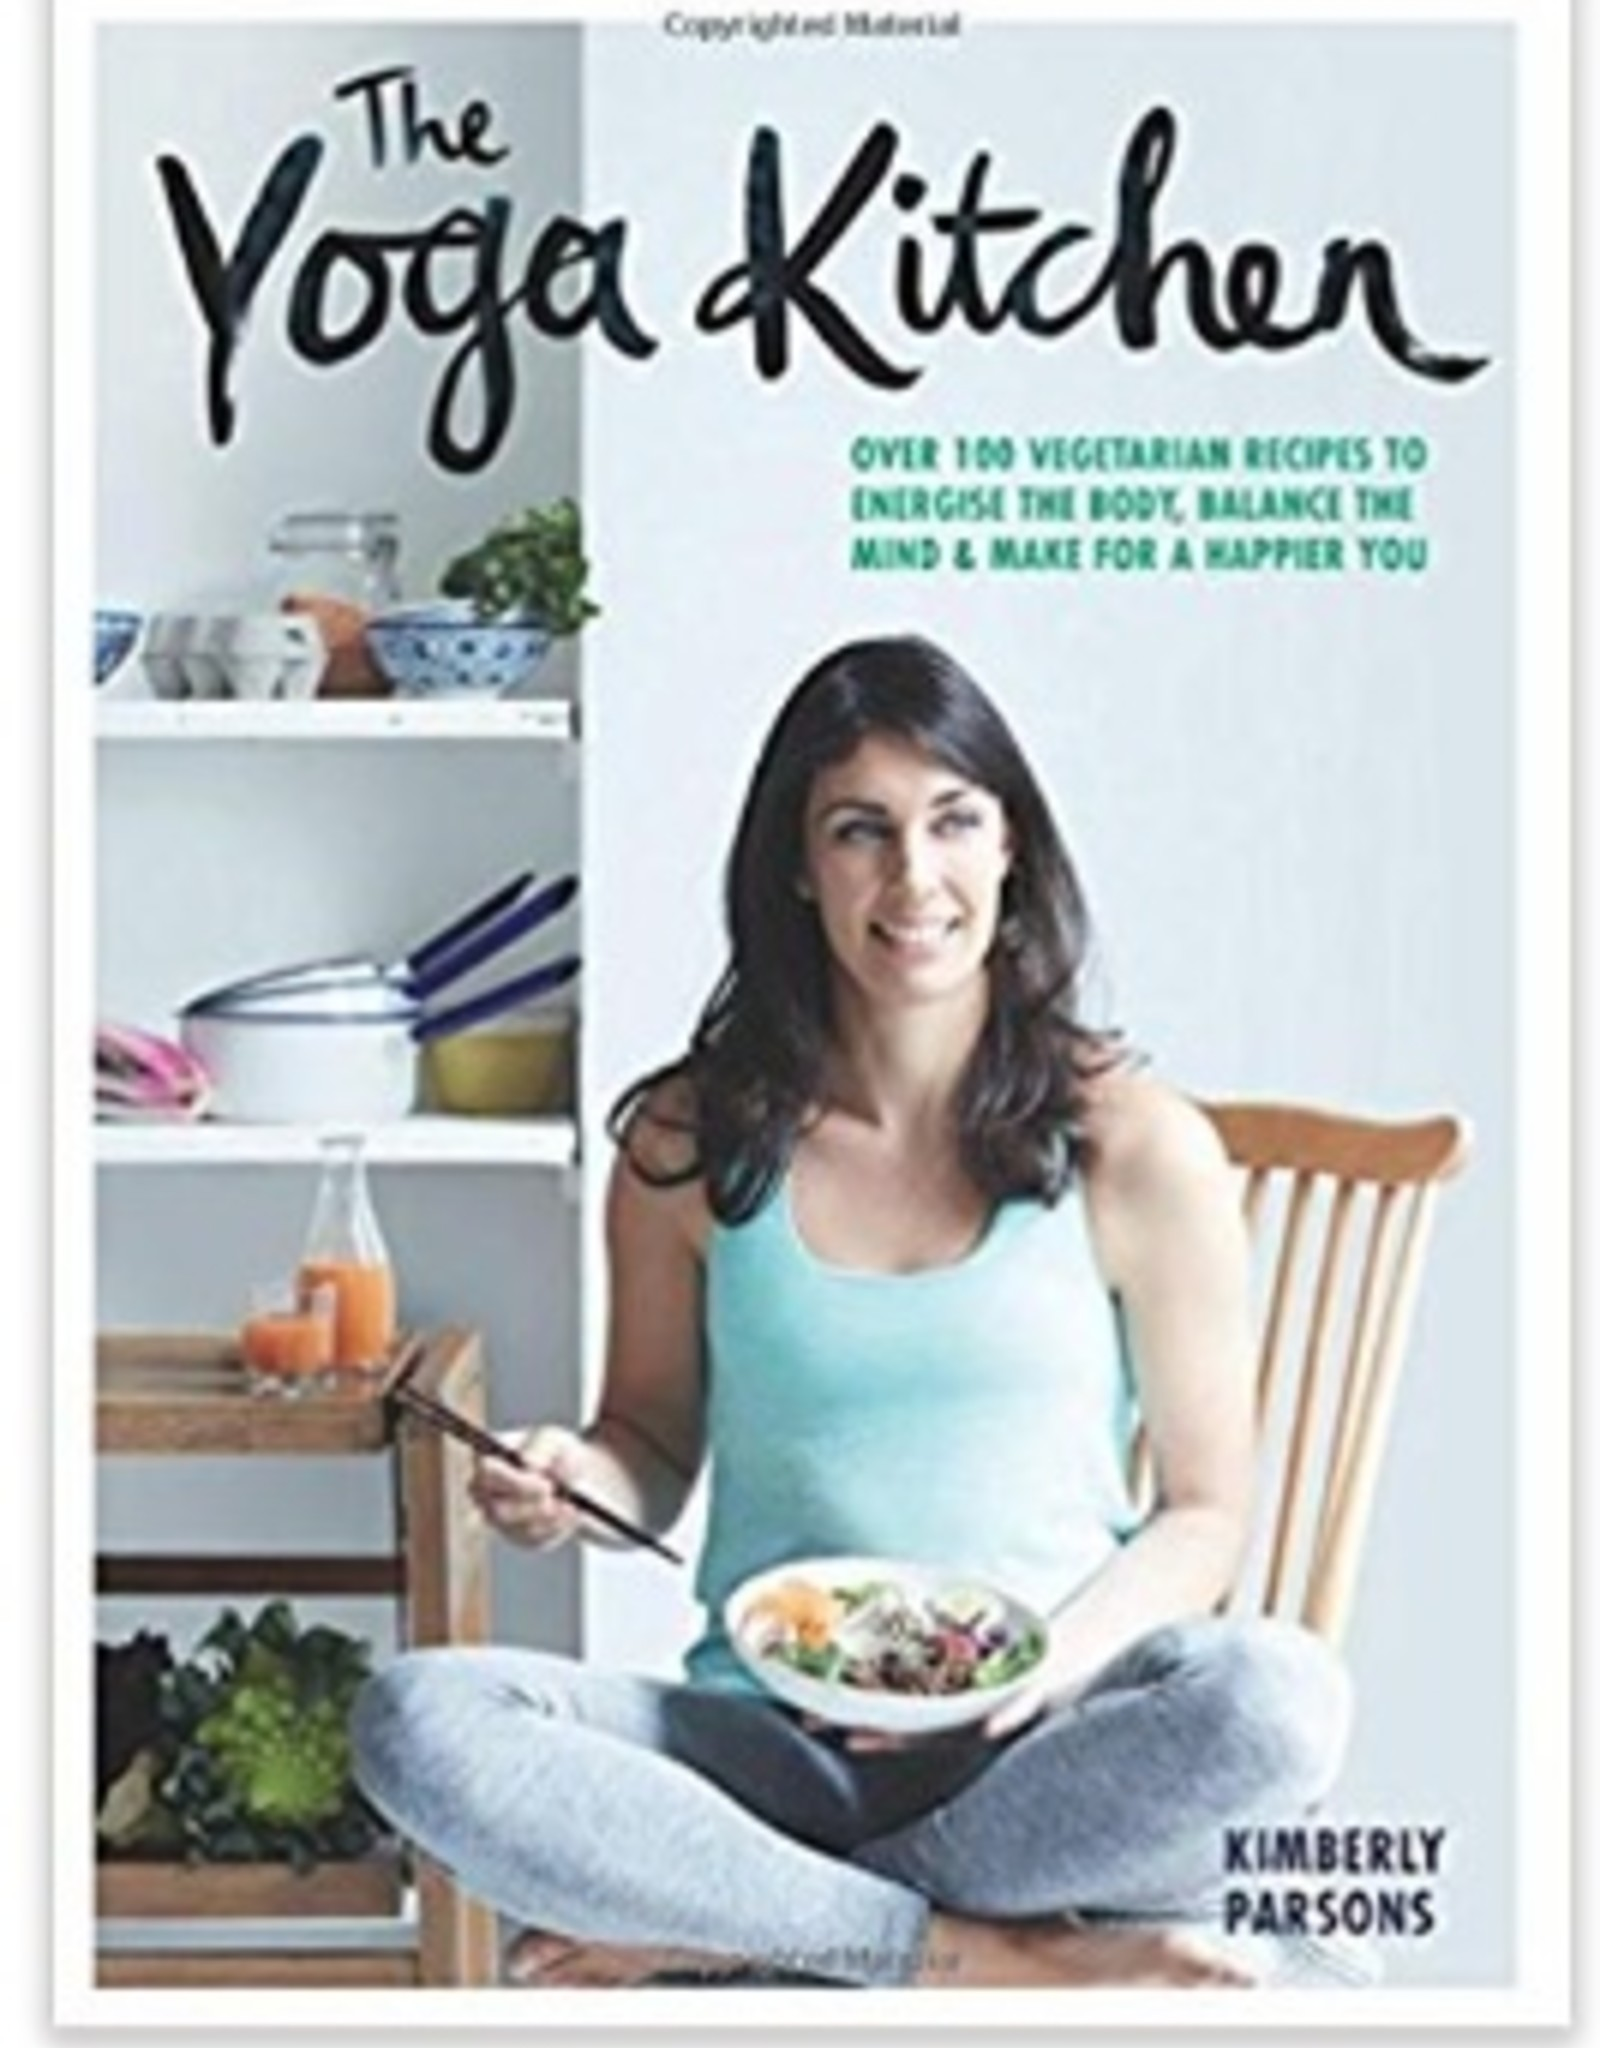 Integral Yoga Distribution The Yoga Kitchen: Over 100 Vegetarian Recipes to Energize the Body, Balance the Mind & Make for a Happier You